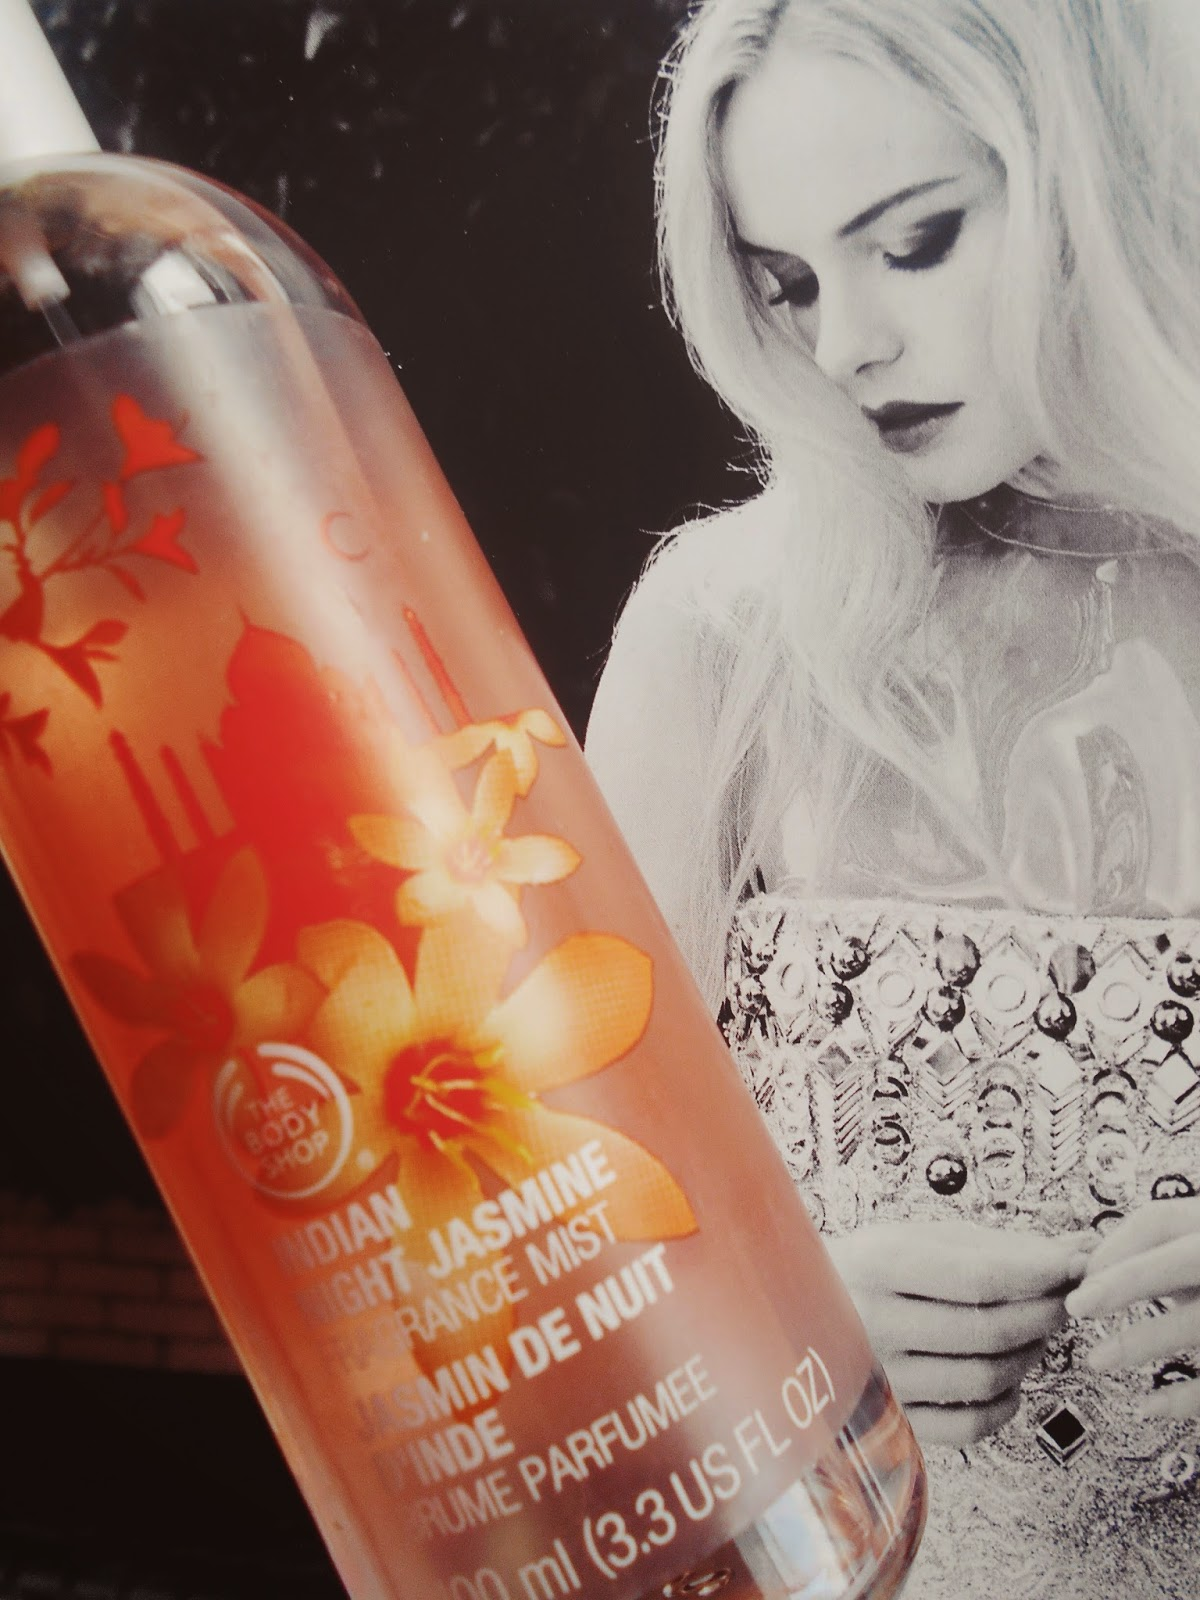 The Body Shop Indian Night Jasmine Fragrance Mist